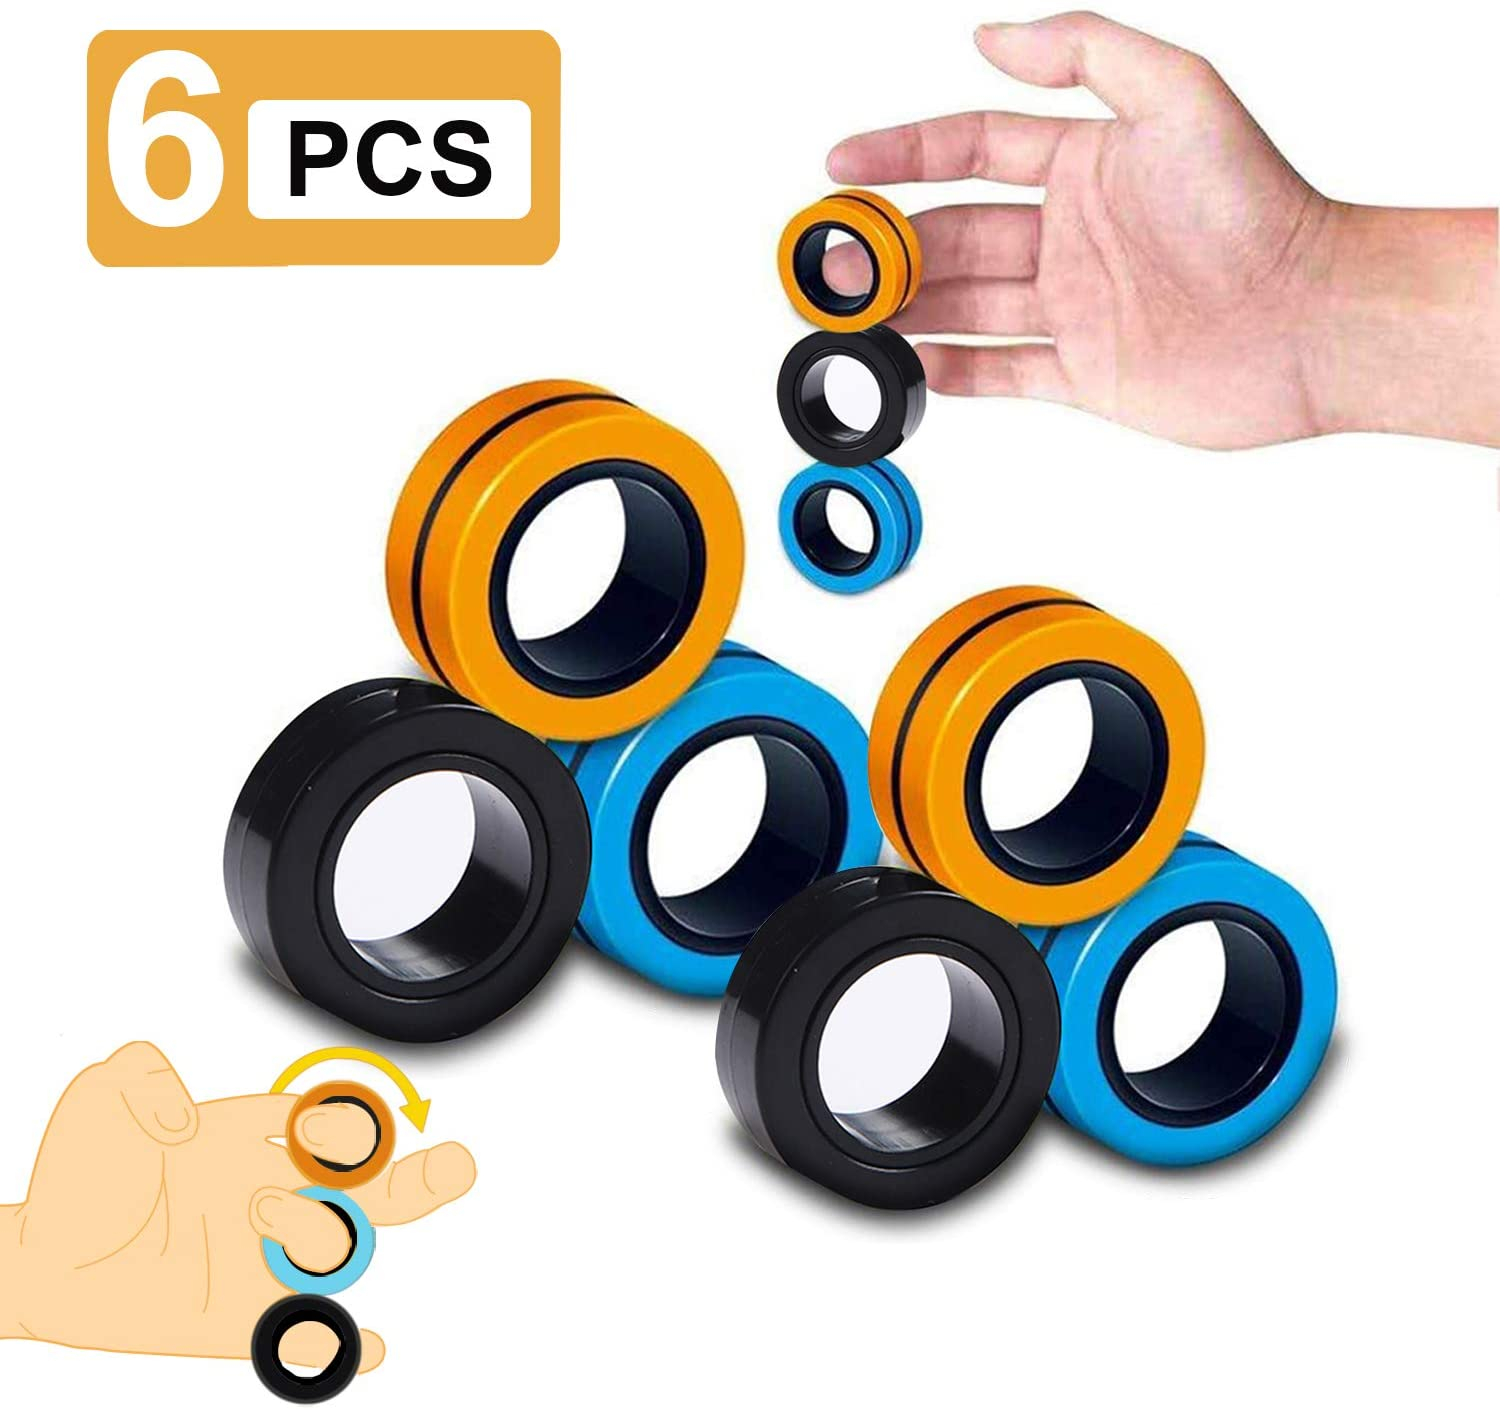 ALLFEIYA Magnetic Rings Toy ,Finger Toys,,Magnetic Fingertip Toy,Colorful Magical Finger Game ,Decompression Toy for Children and Adults Magnetic Ring (Black-Blue-Orange, 6)